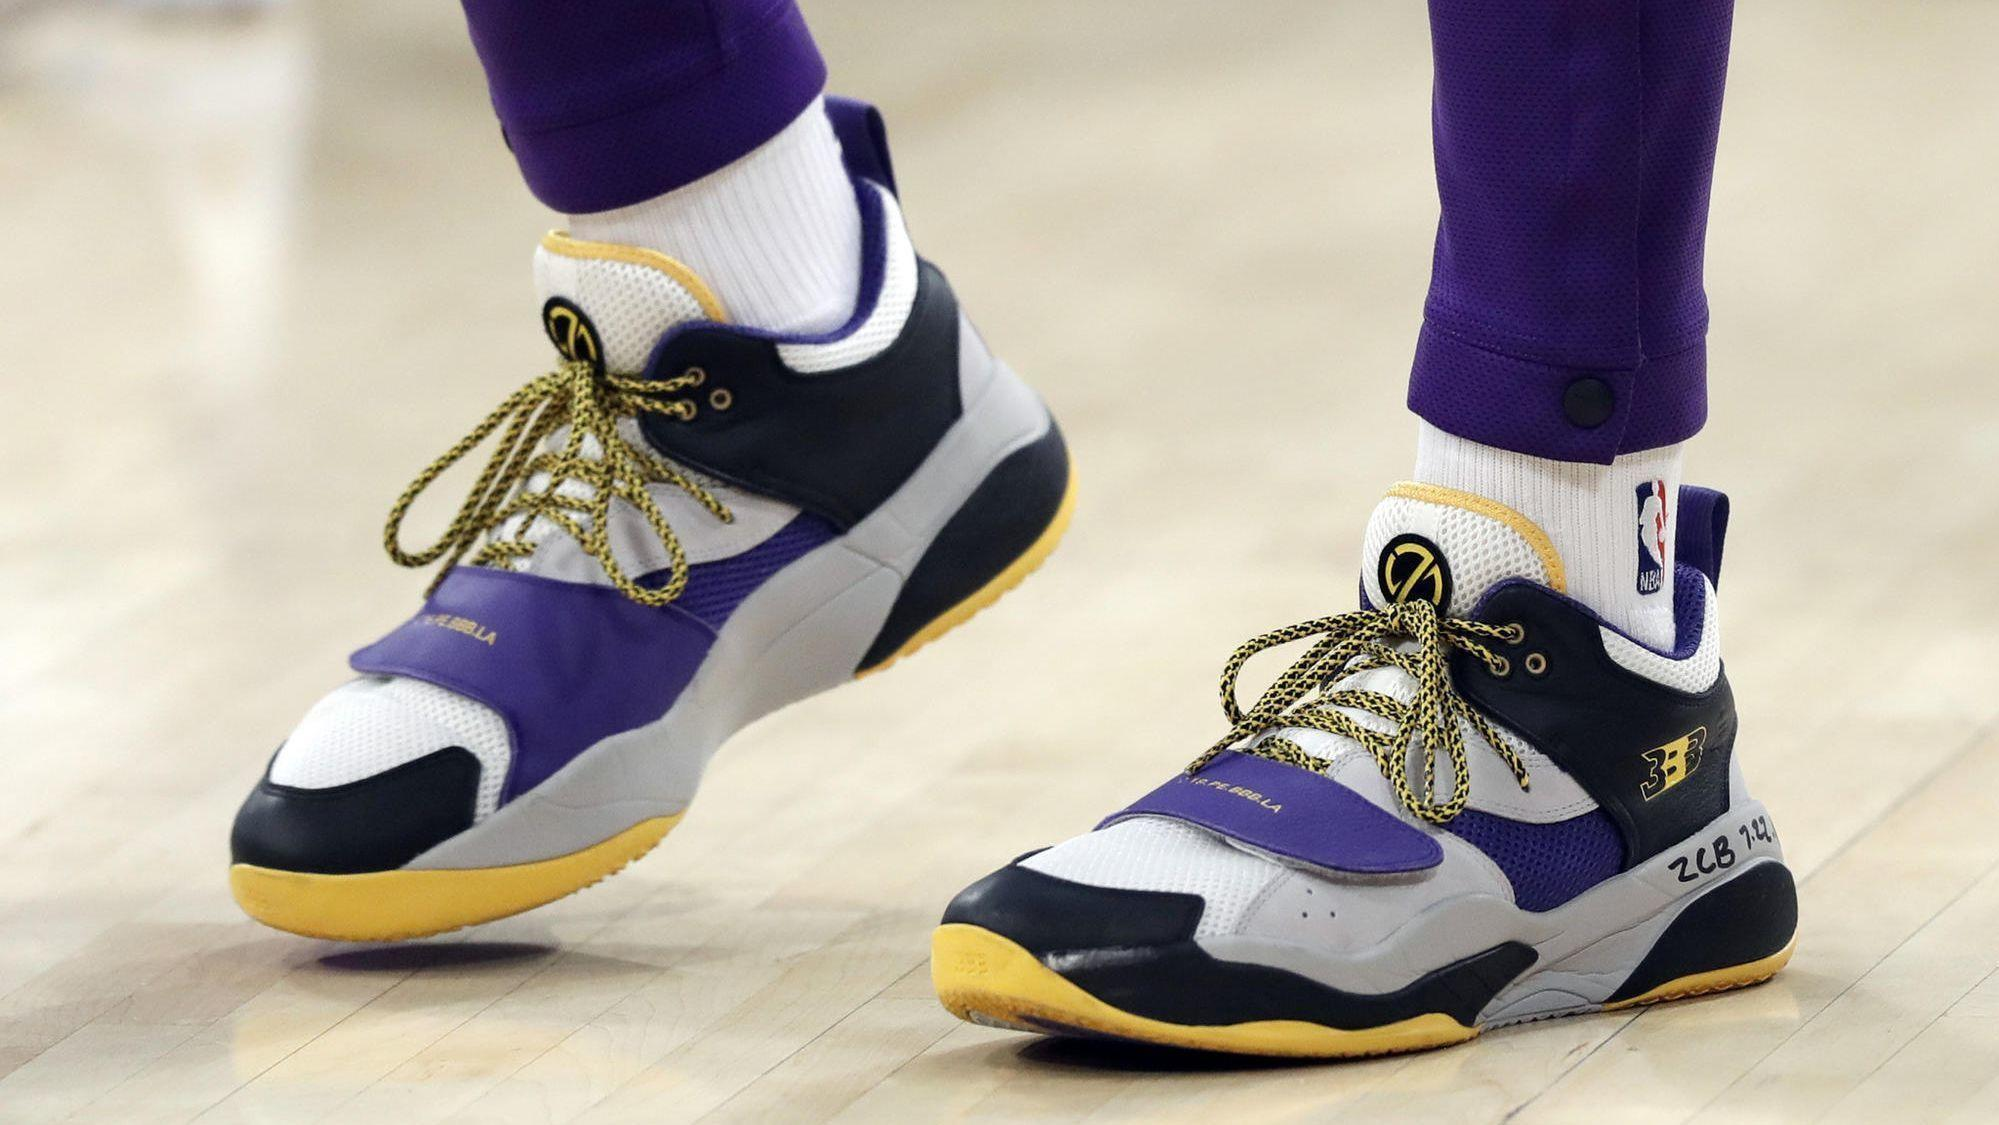 068d6e4065165 The 10 worst NBA shoes worn this year